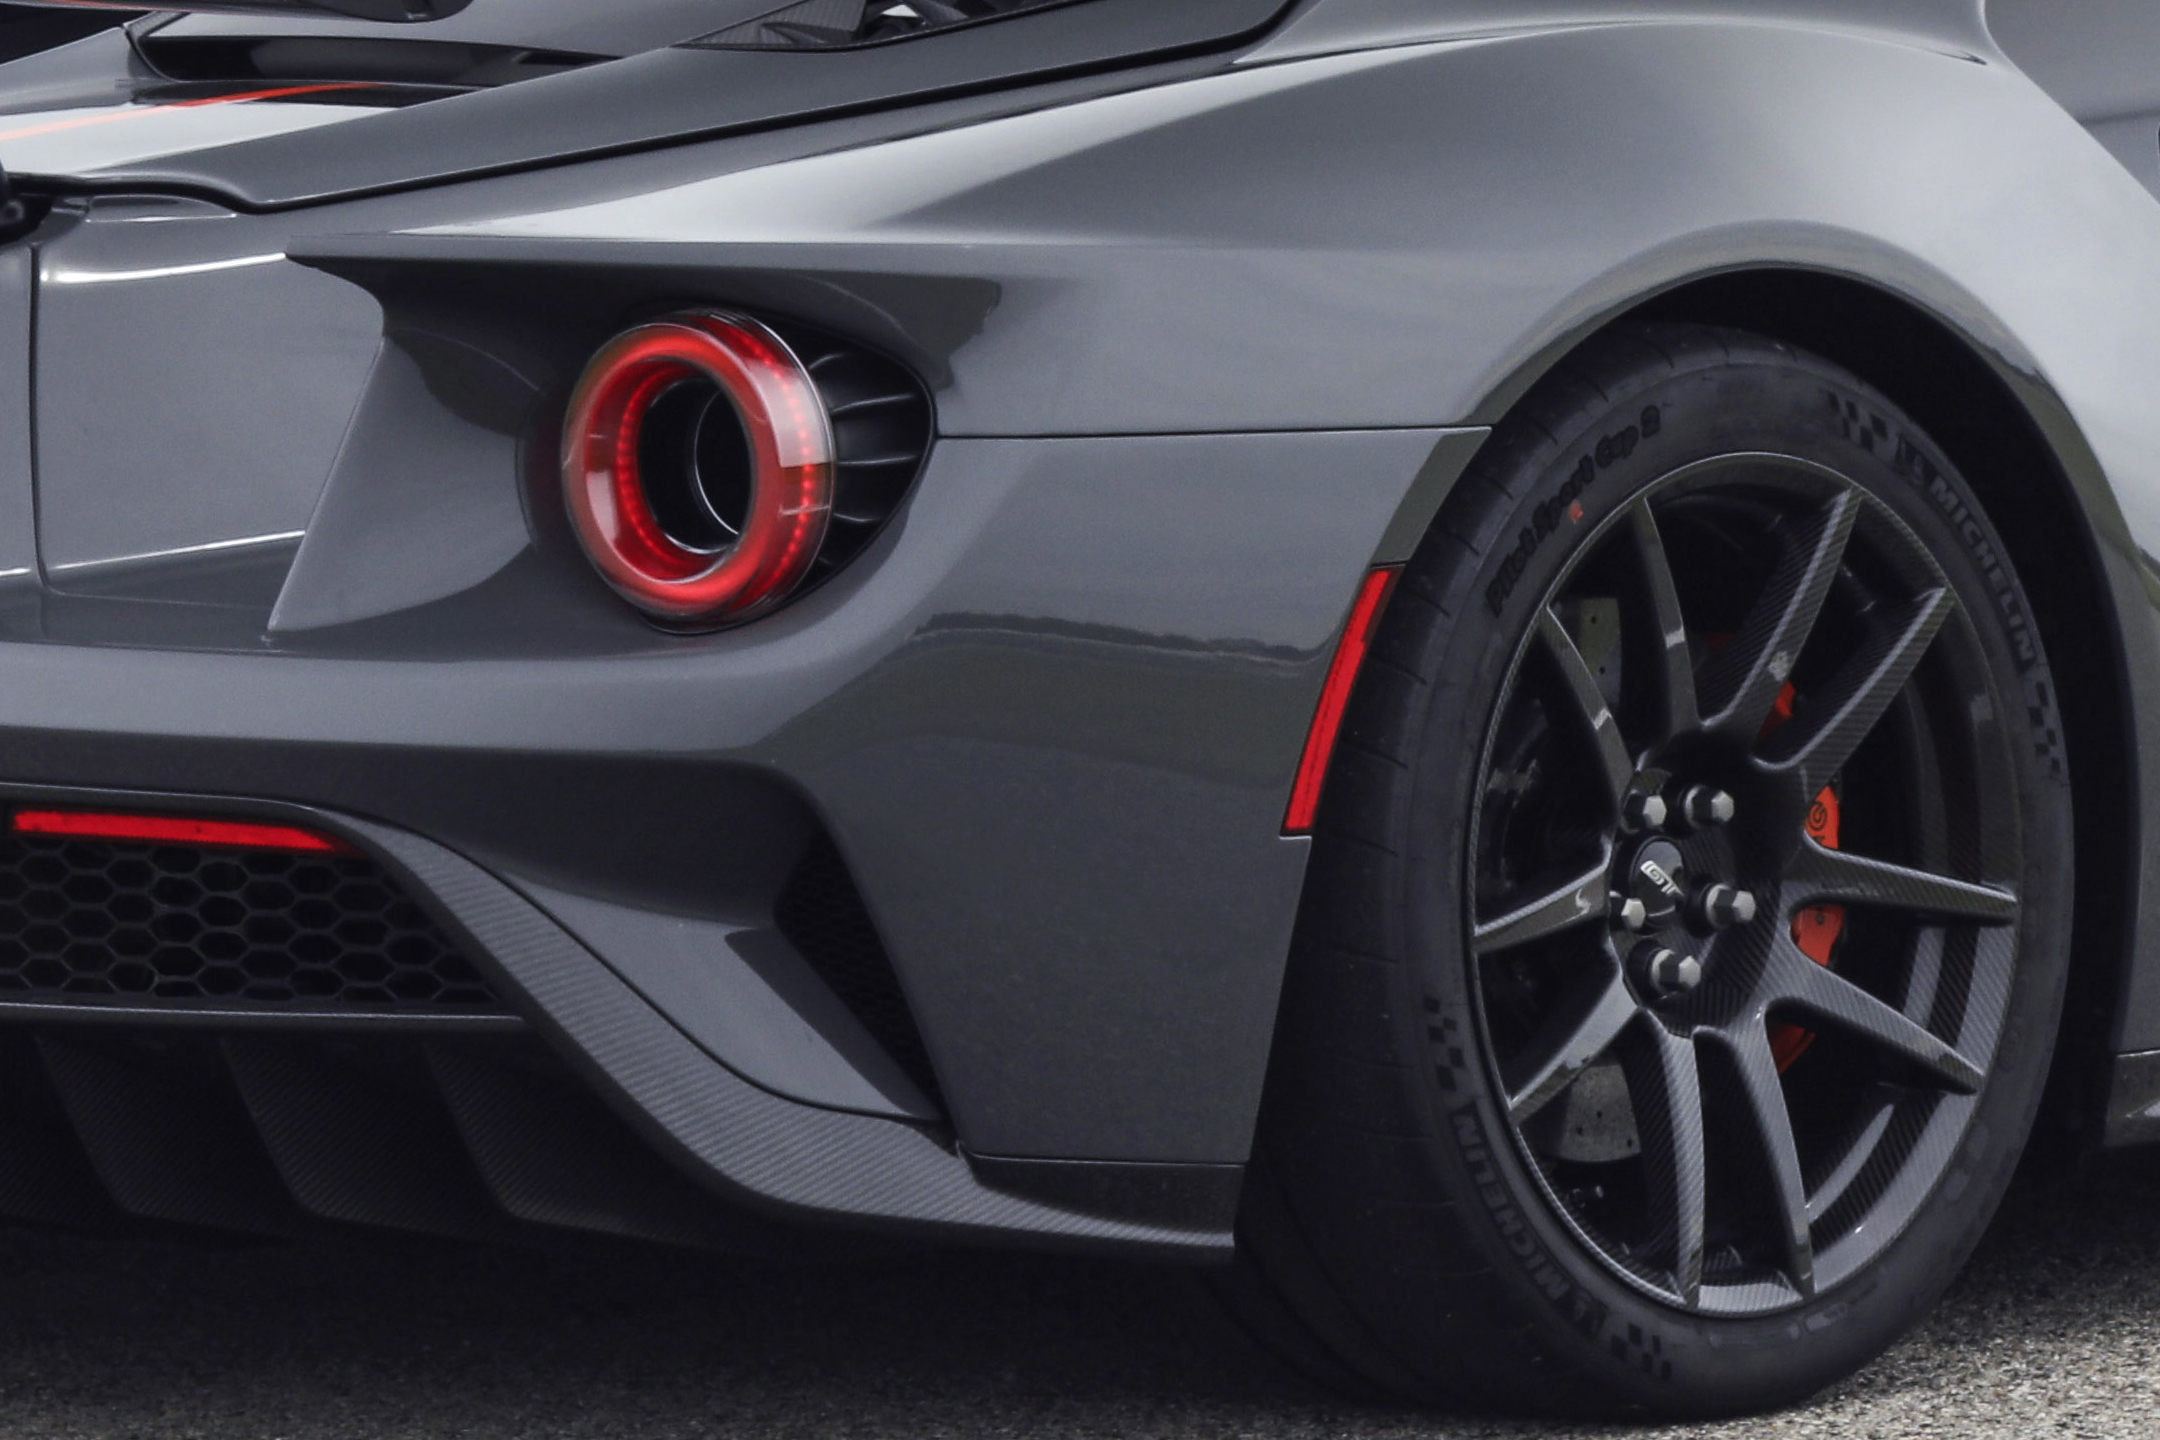 Ford GT Carbon Series - 2018 - rear wheel